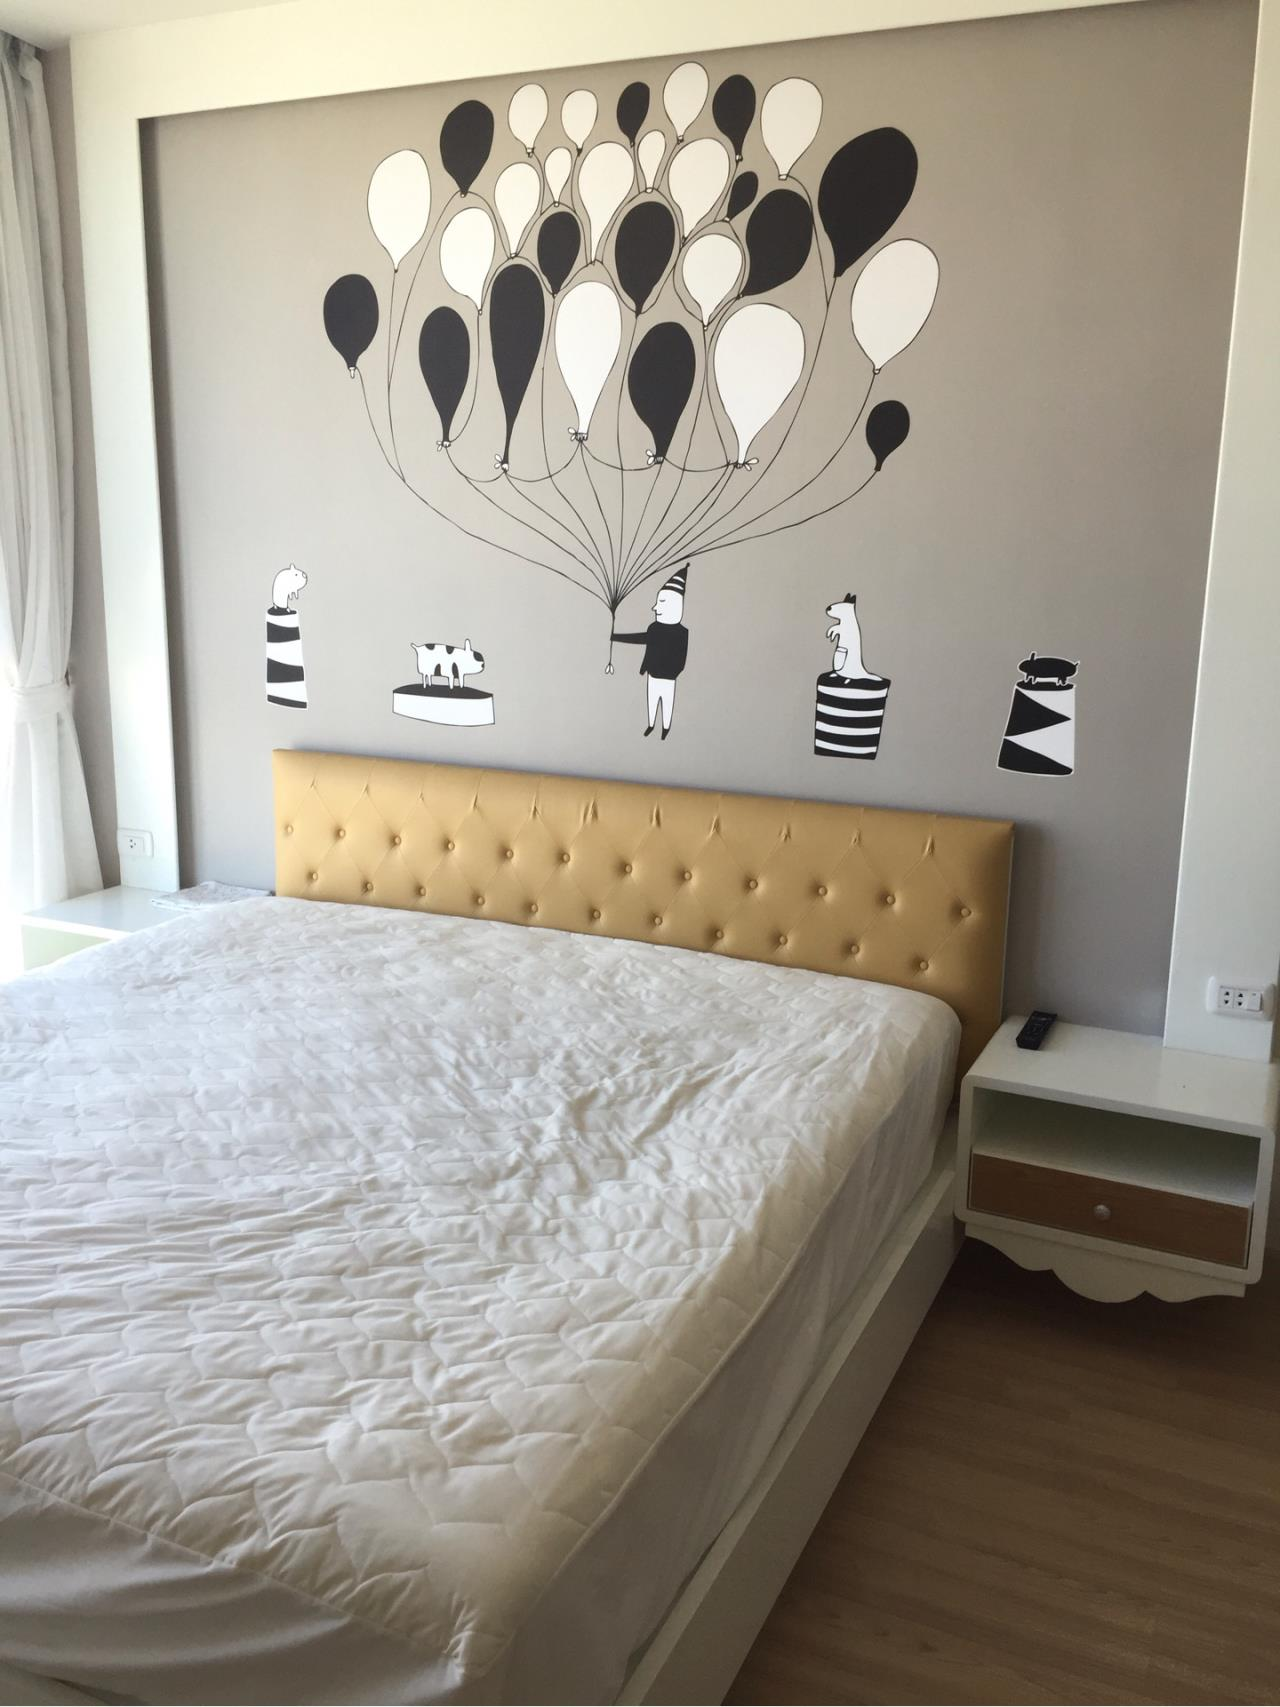 Quality Life Property Agency's Condo 1 Bedroom For Rent and For Sale  At Sky walk  35 ,  7